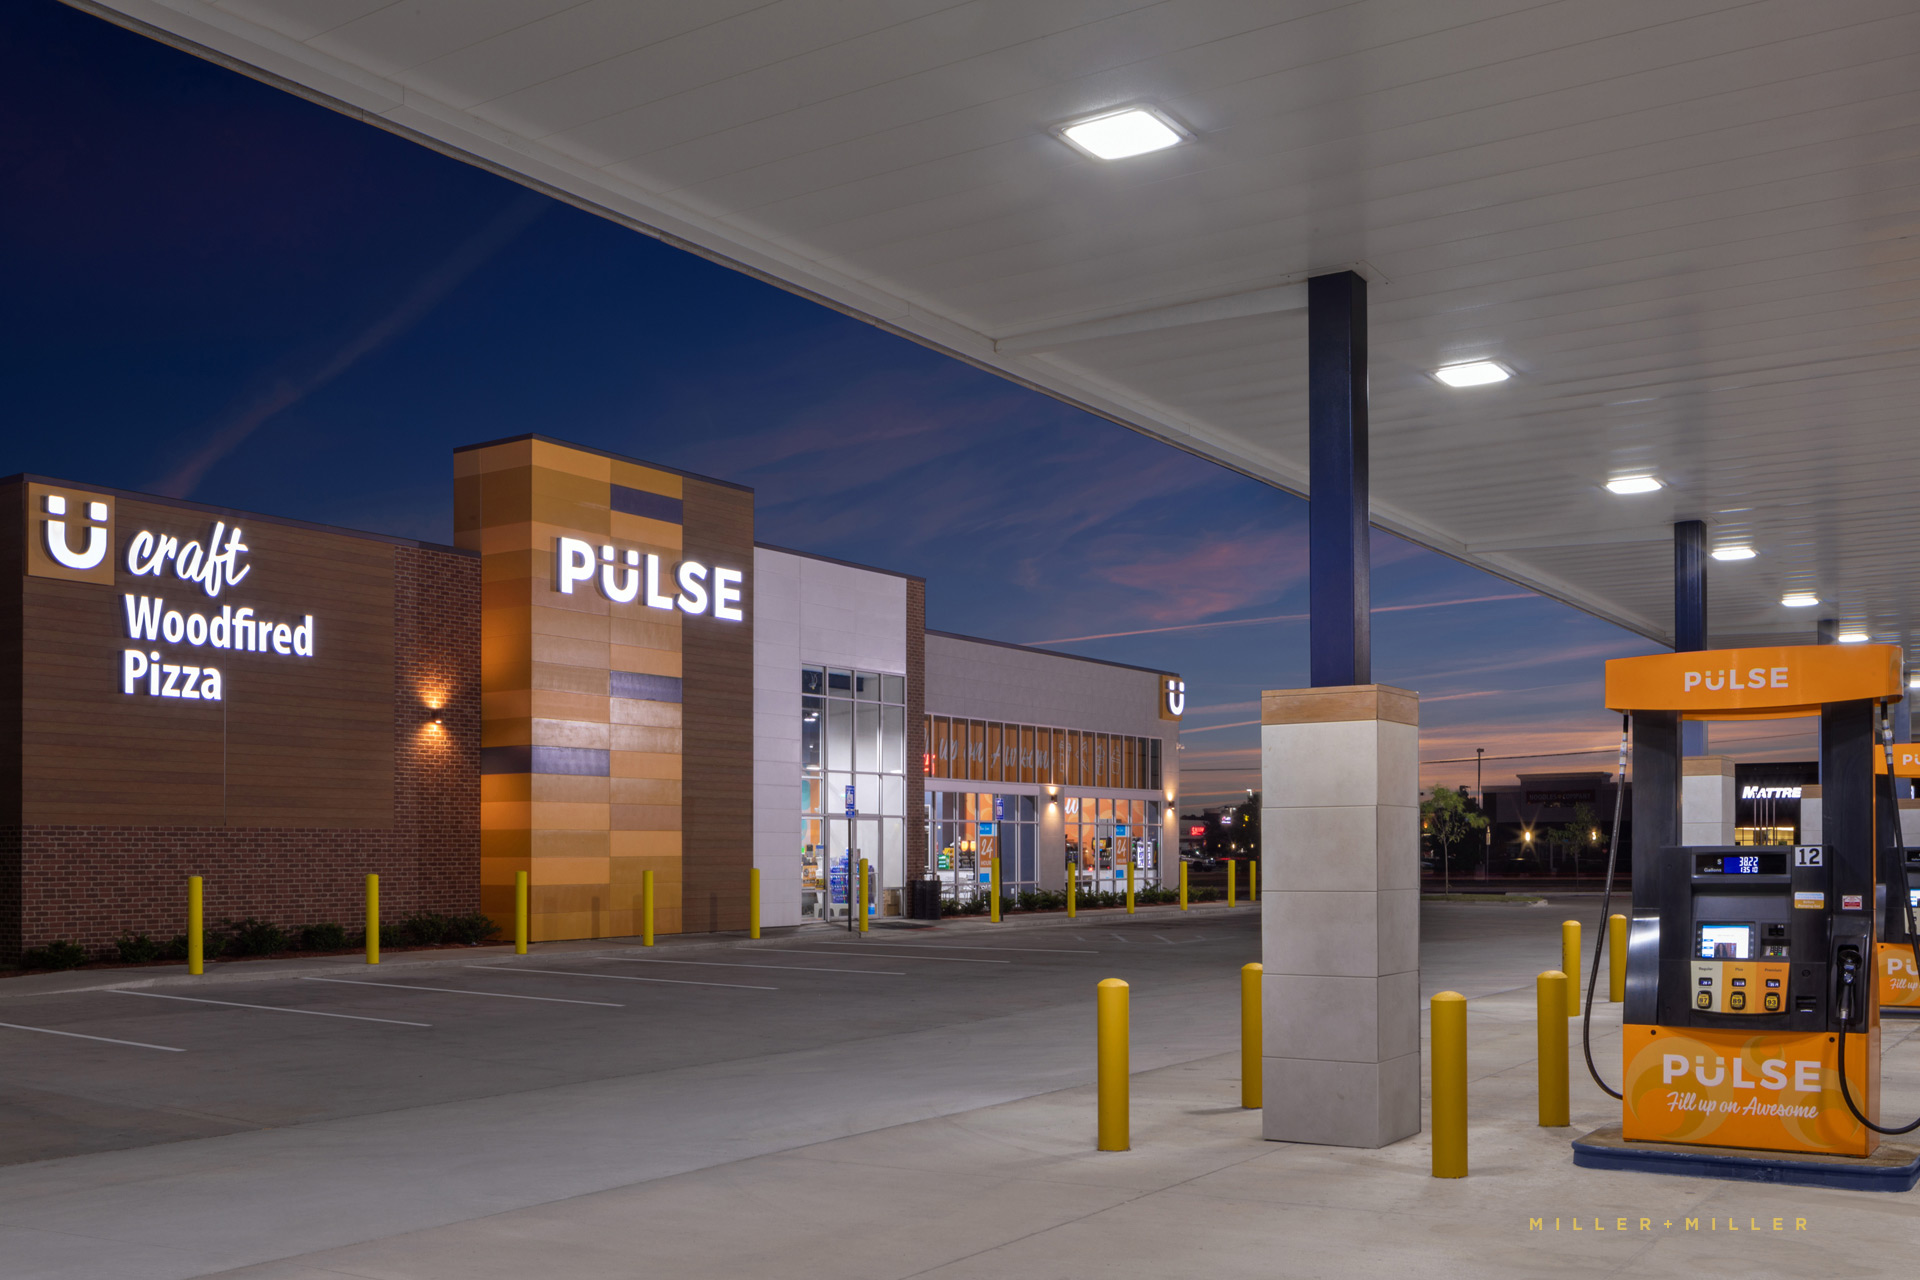 gas-station-commercial-construction-development-architectural-photography